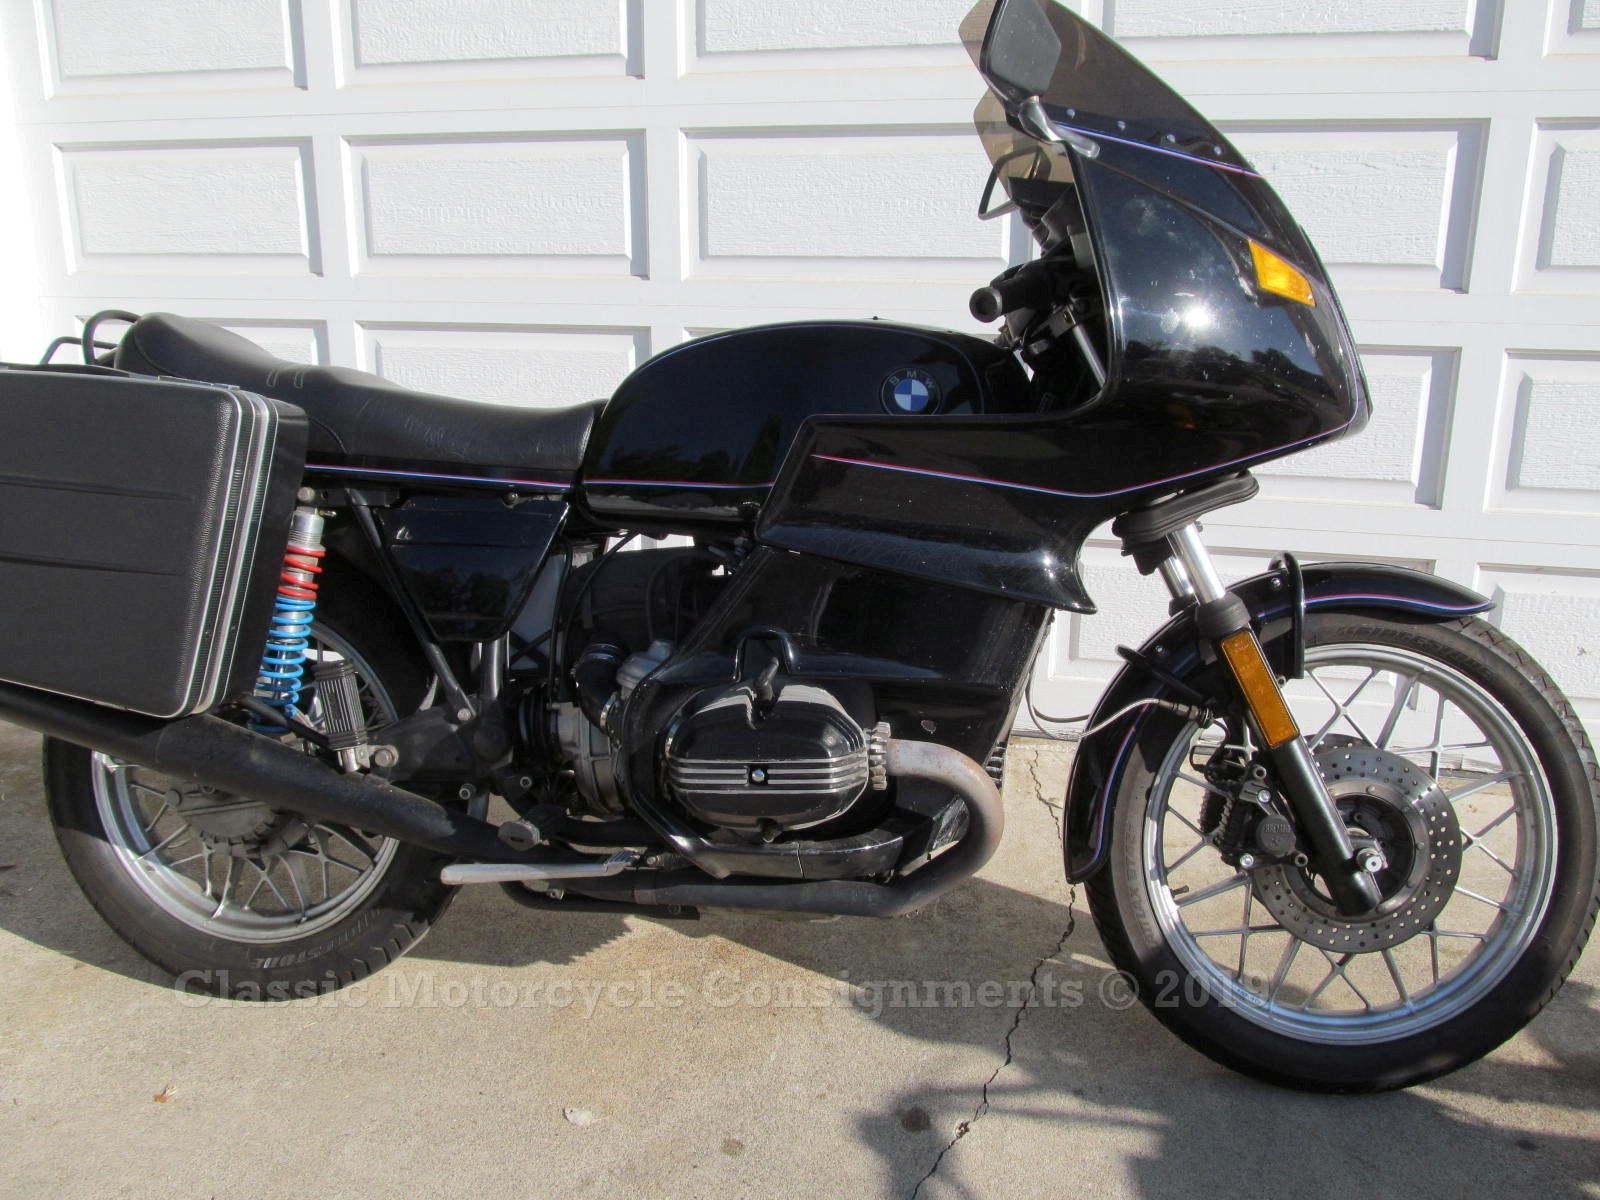 1984 BMW R 100 RS Motorcycle — SOLD!